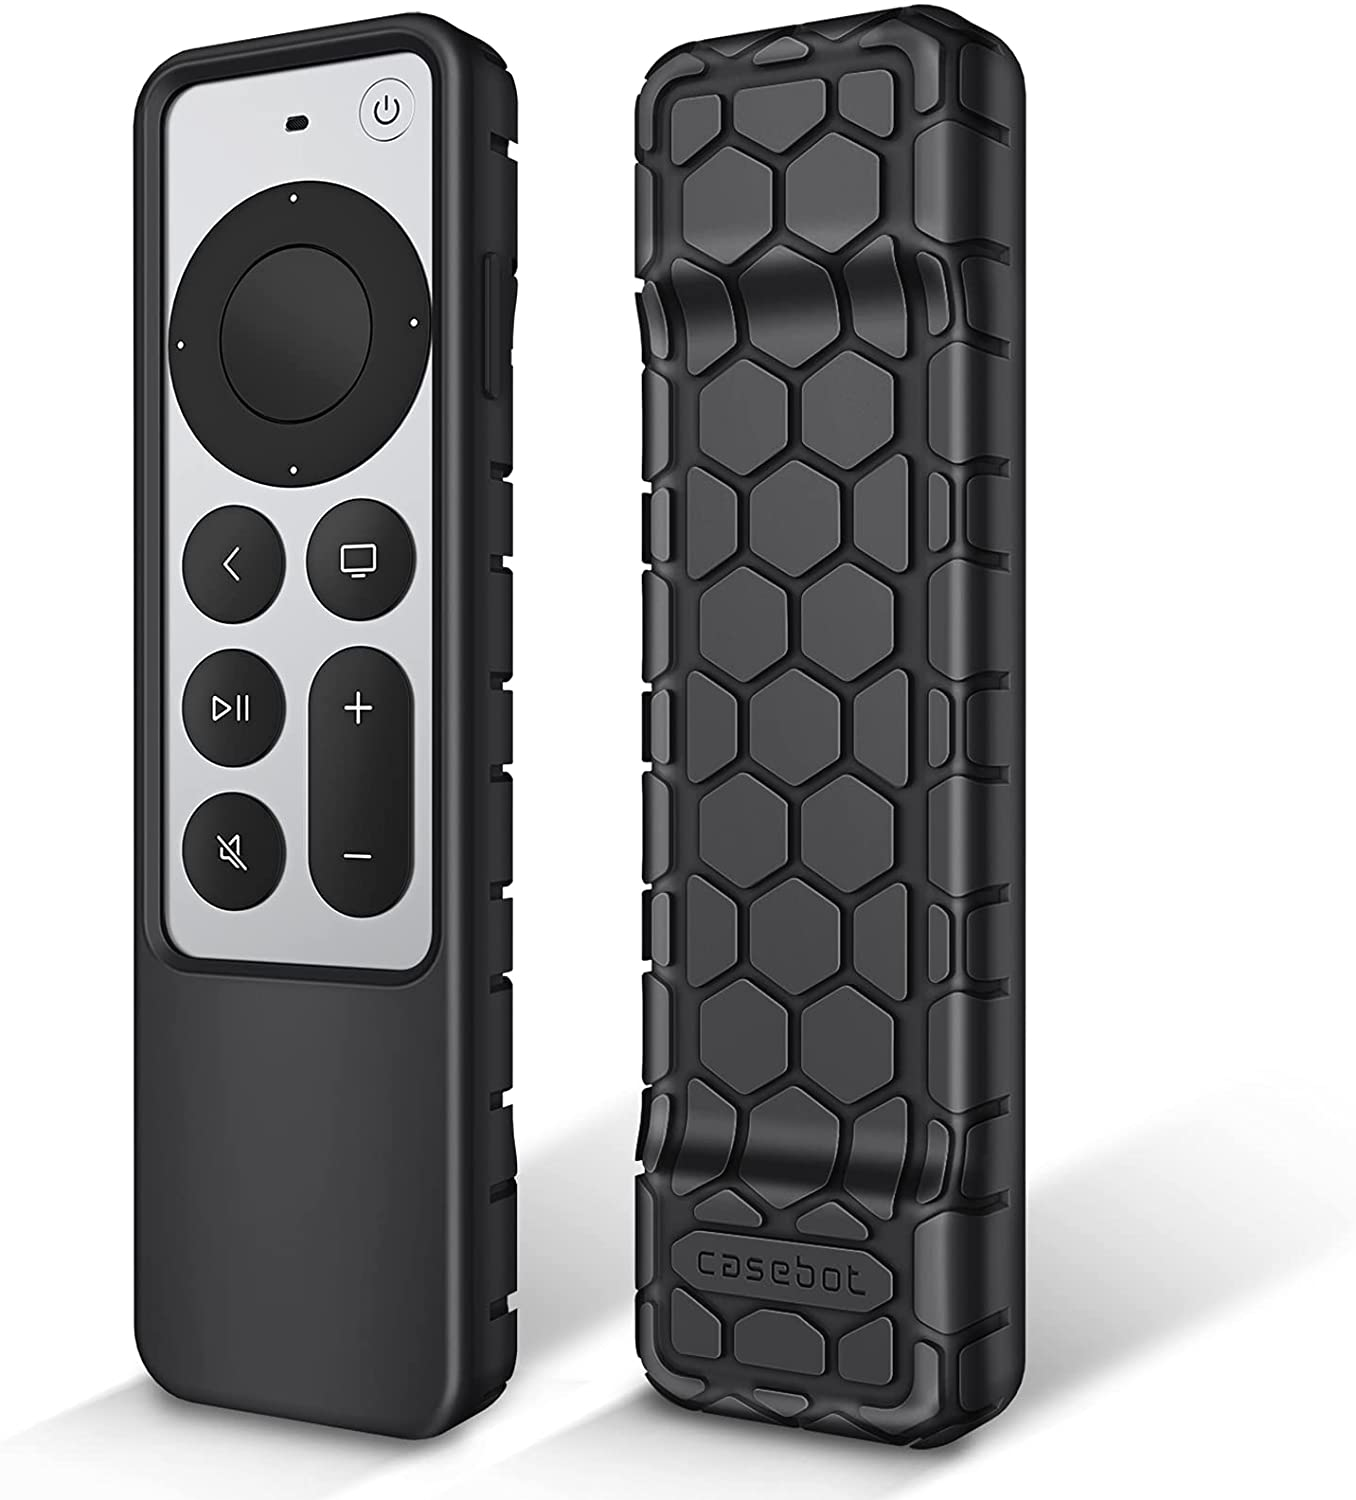 Fintie Protective Case for Apple TV Siri Remote 2021 - Honey Comb Lightweight Anti Slip Shockproof Silicone Cover for Apple TV 4K / HD Siri Remote Controller (2nd Generation), Black